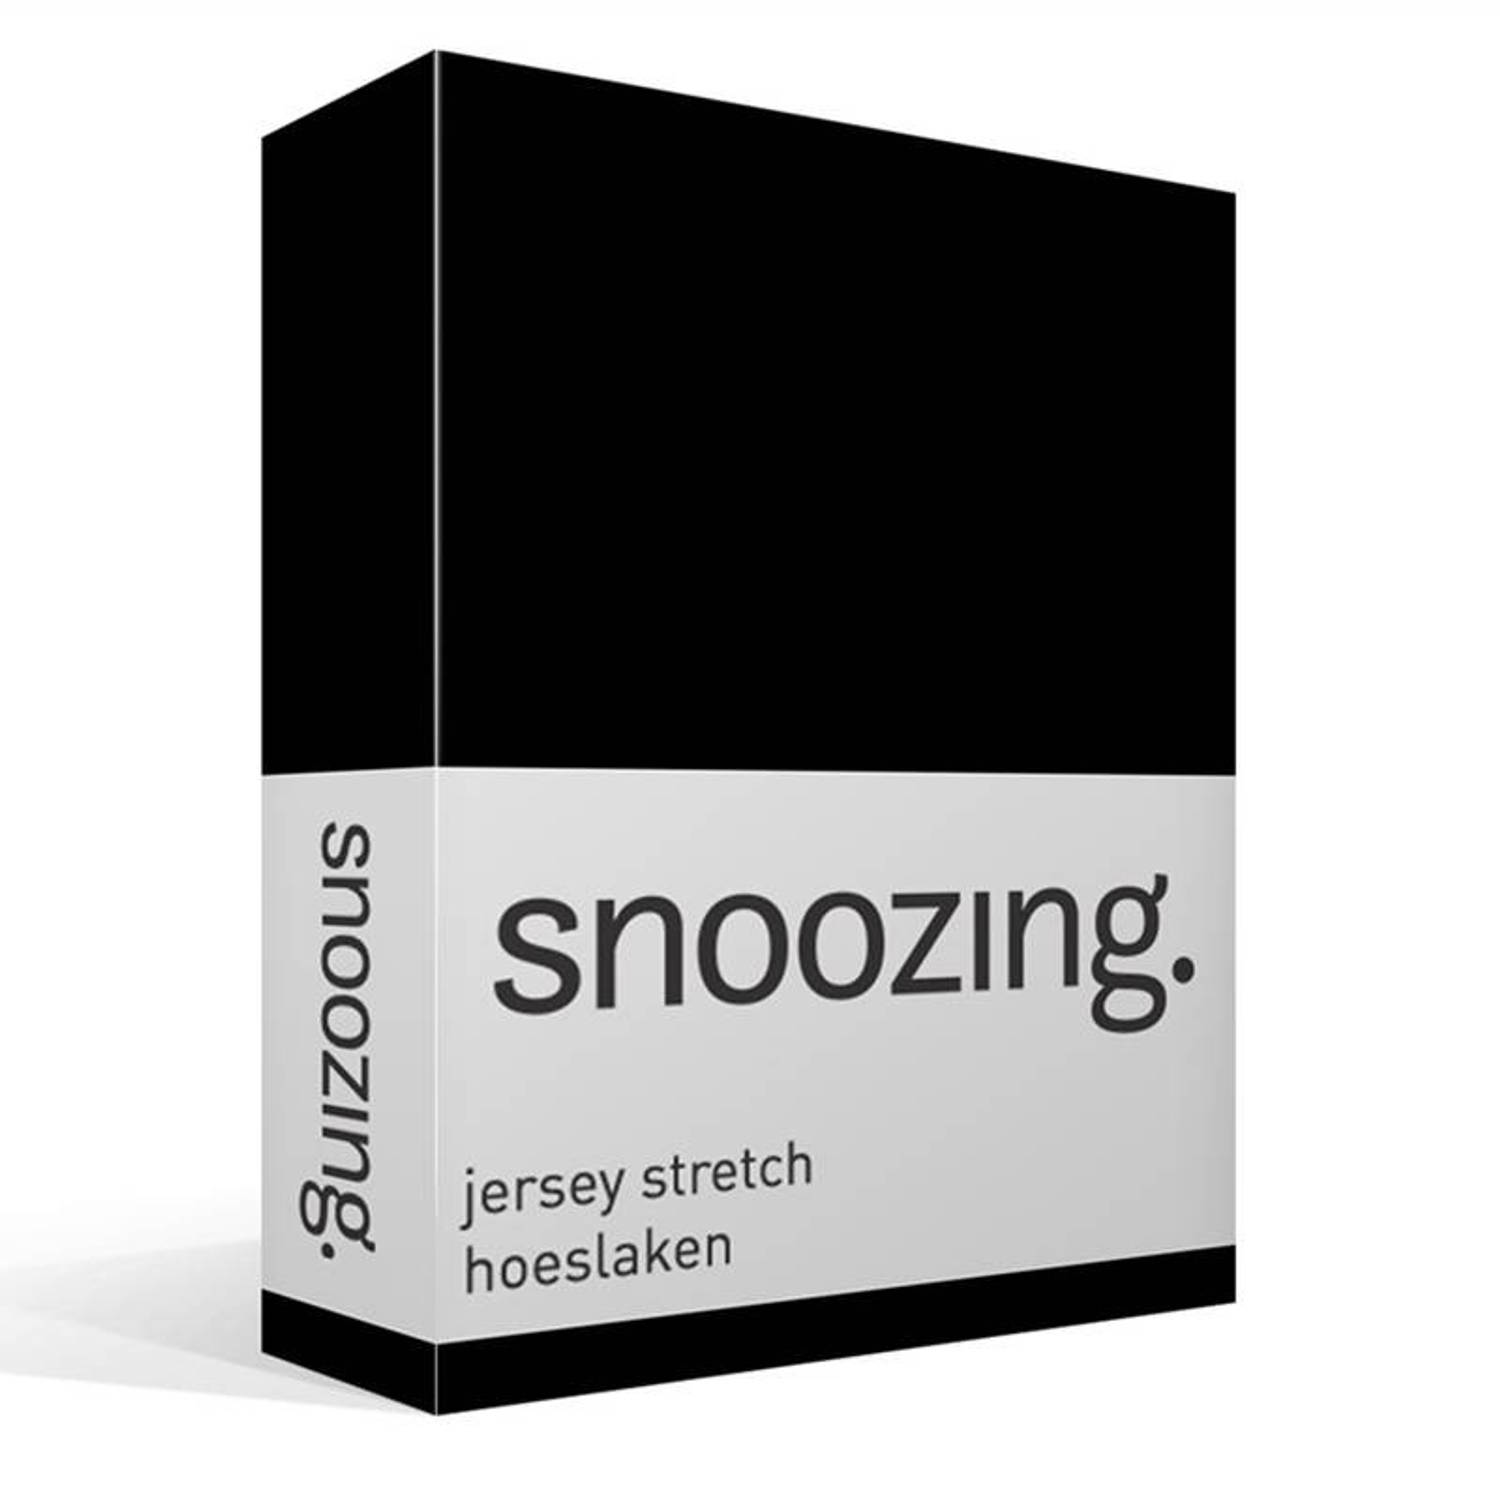 Snoozing jersey stretch hoeslaken - 2-persoons (140/150x200/220 cm)